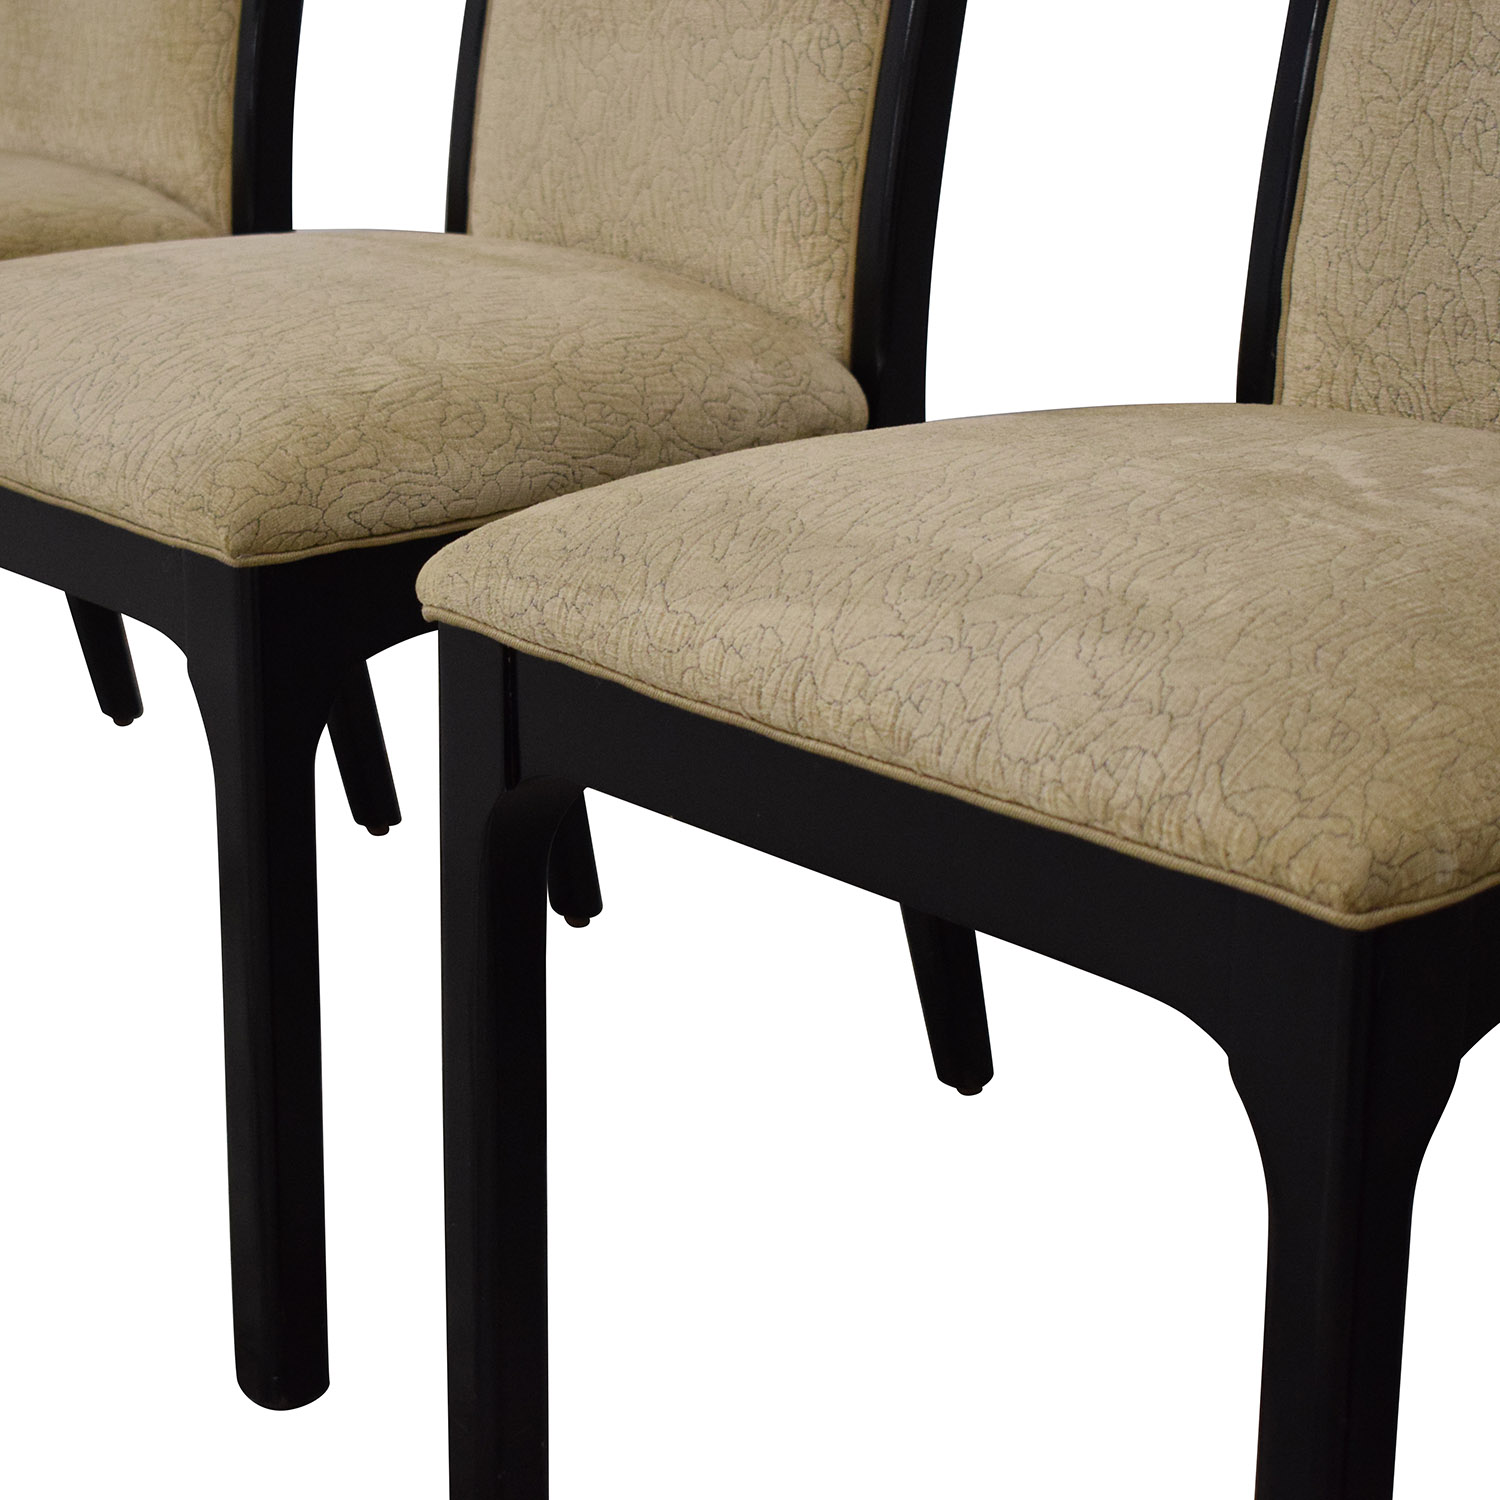 Baker Furniture Baker Furniture Upholstered Dining Chairs second hand